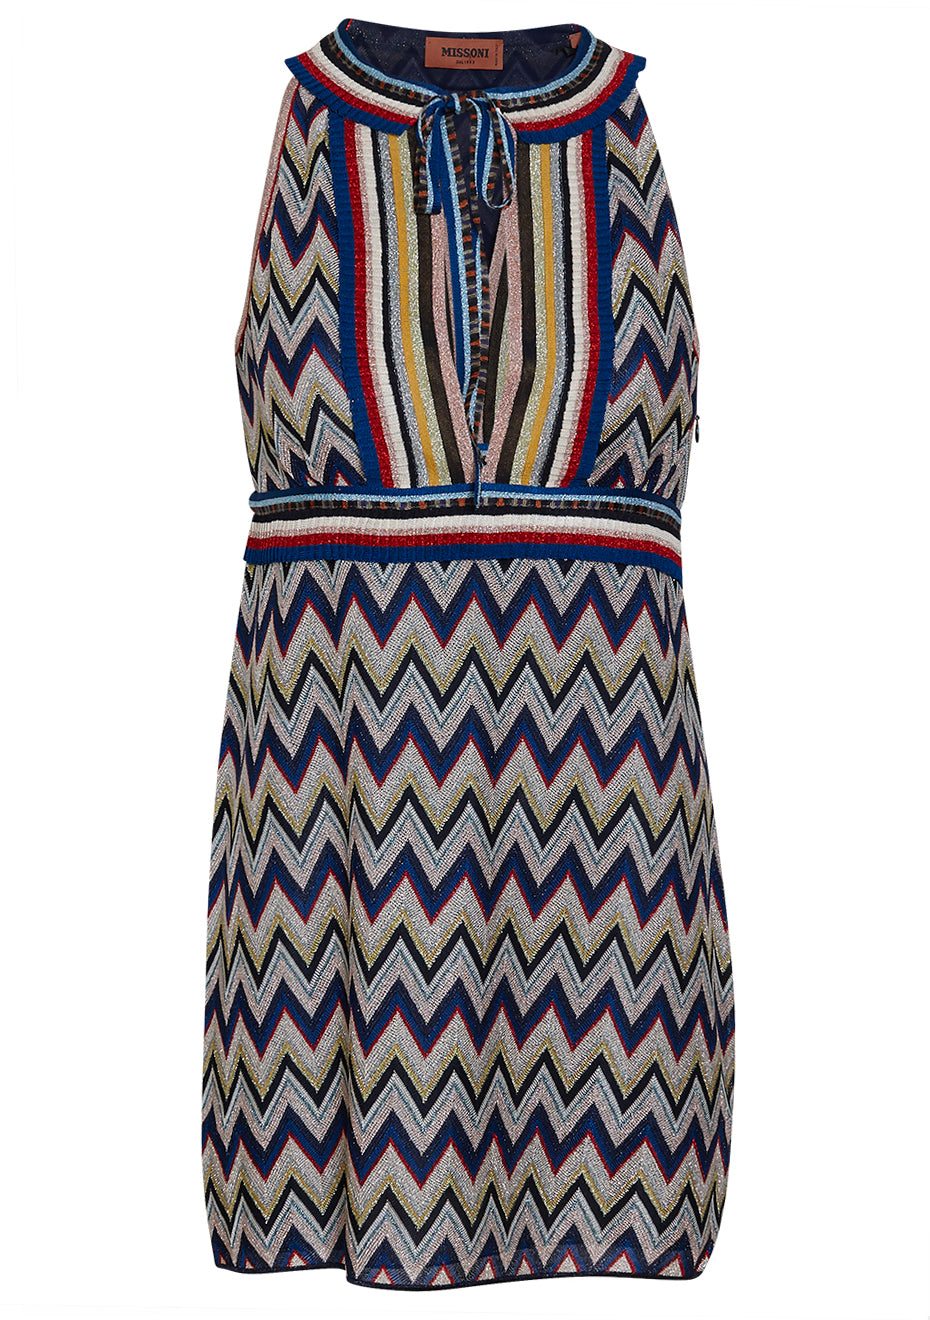 Zigzag Mini Dress